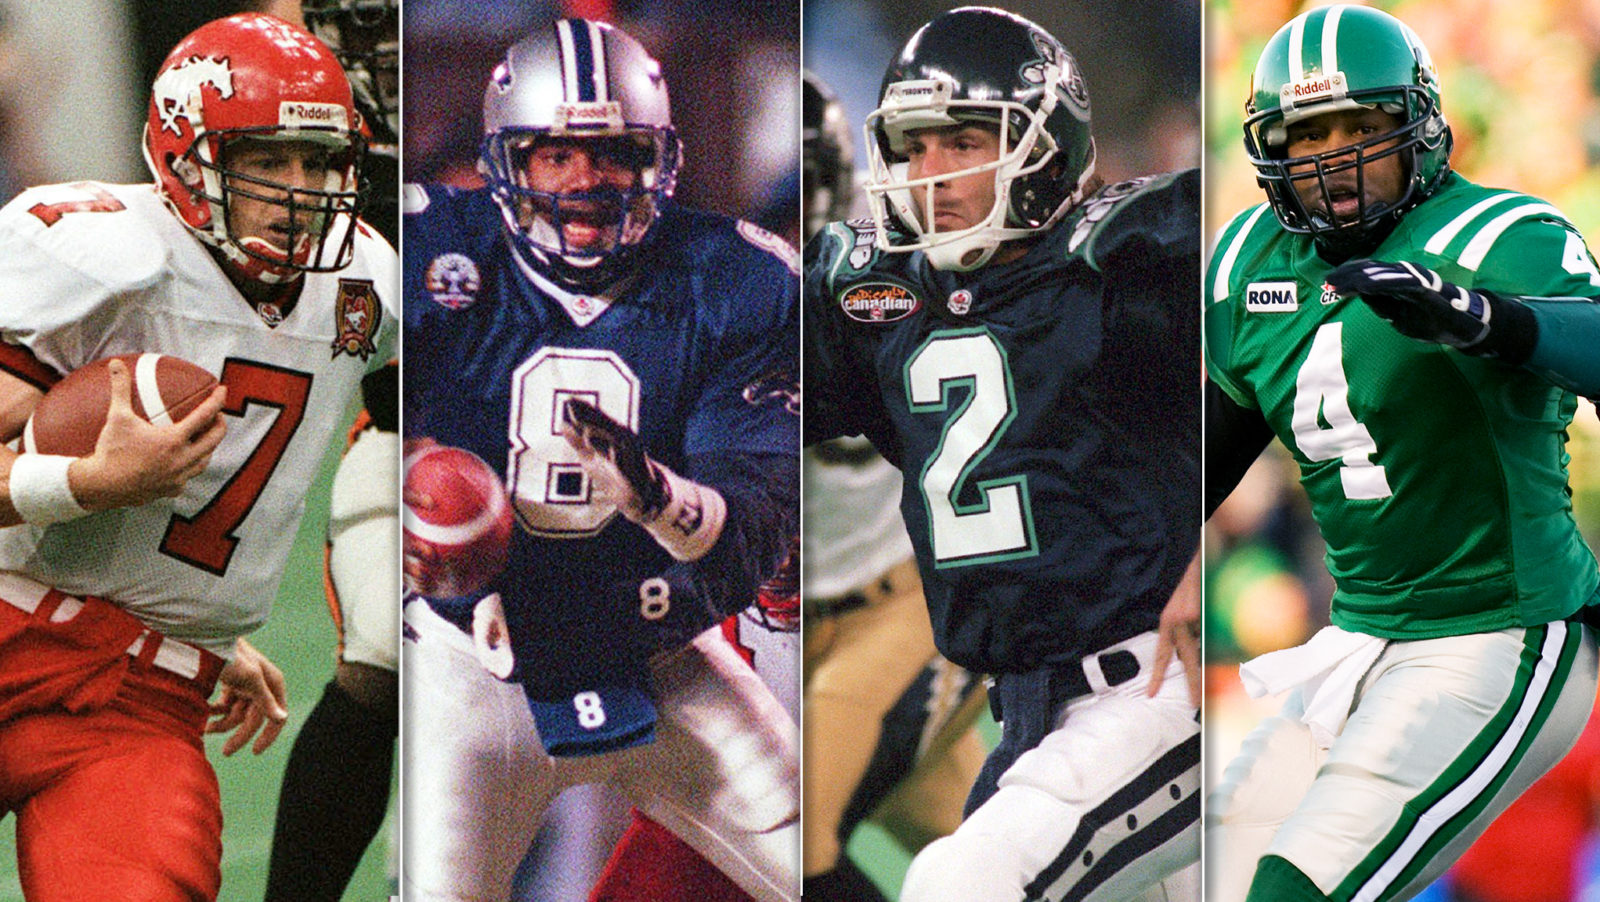 Former teammates, coaches reunite virtually in new content series - CFL.ca